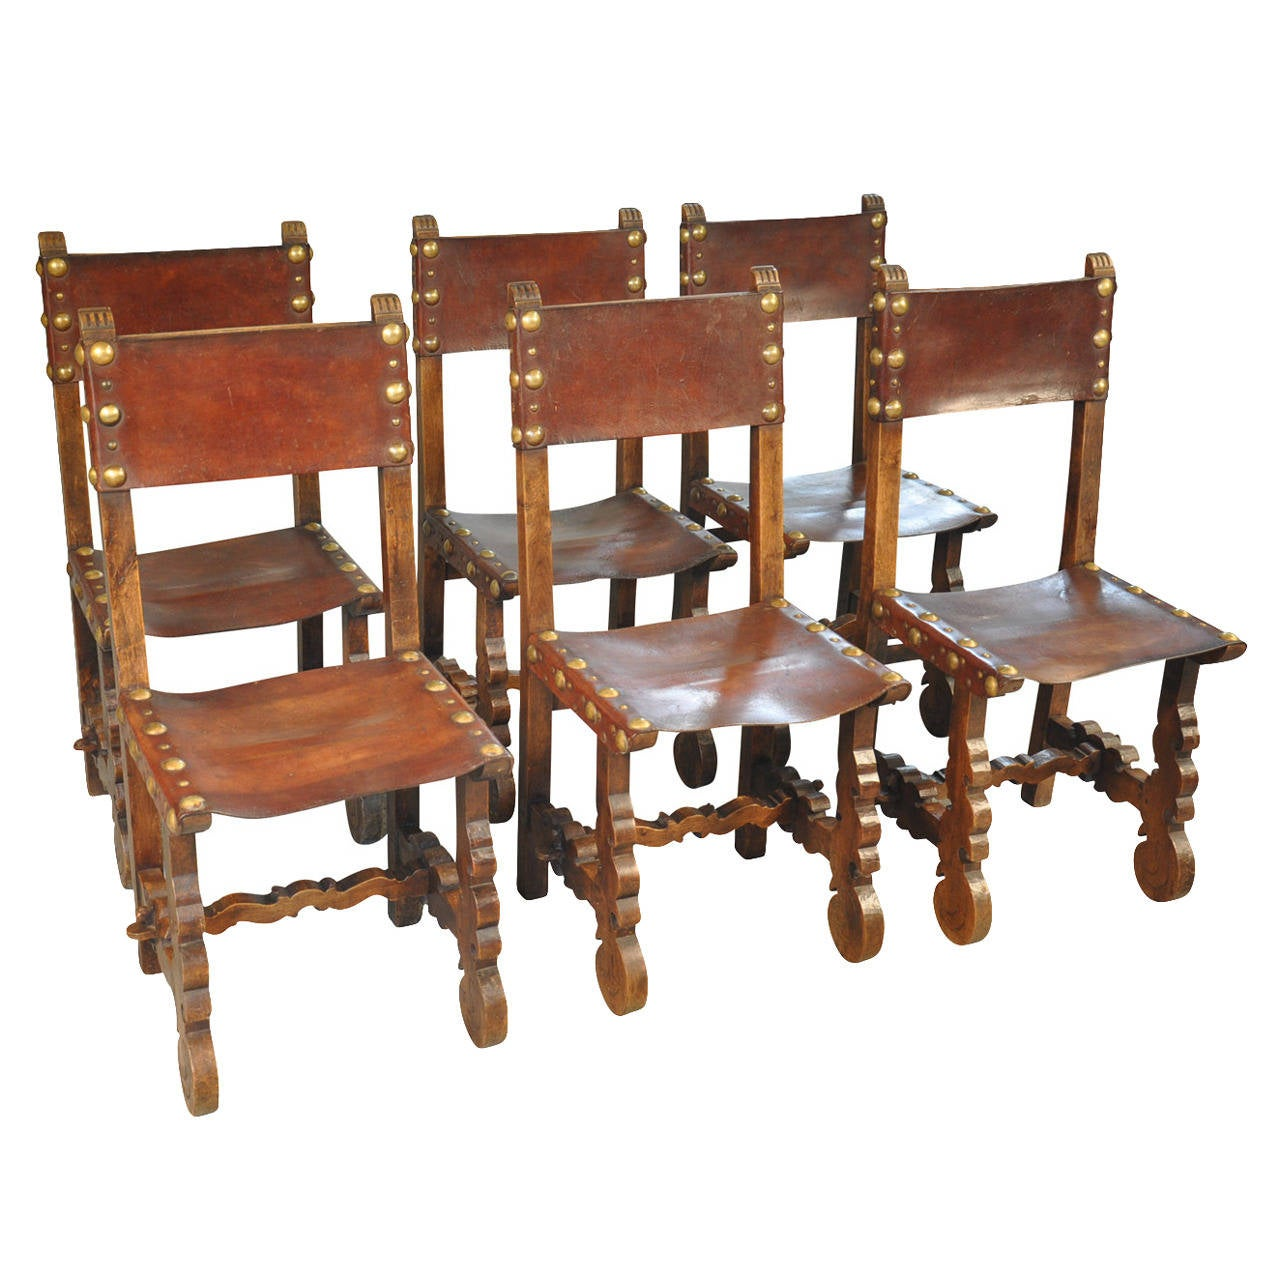 Merveilleux 19th Century Set Of 6 Spanish Leather Dining Chairs At 1stdibs